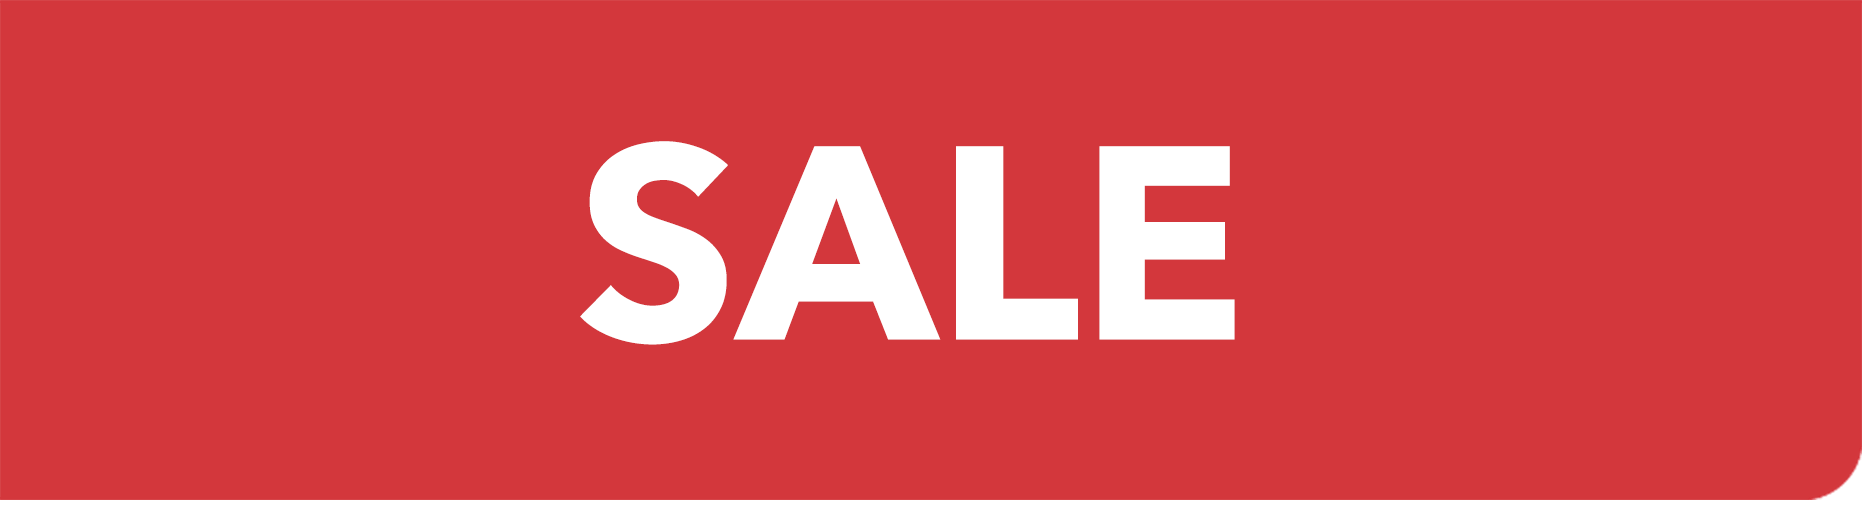 Products Sale